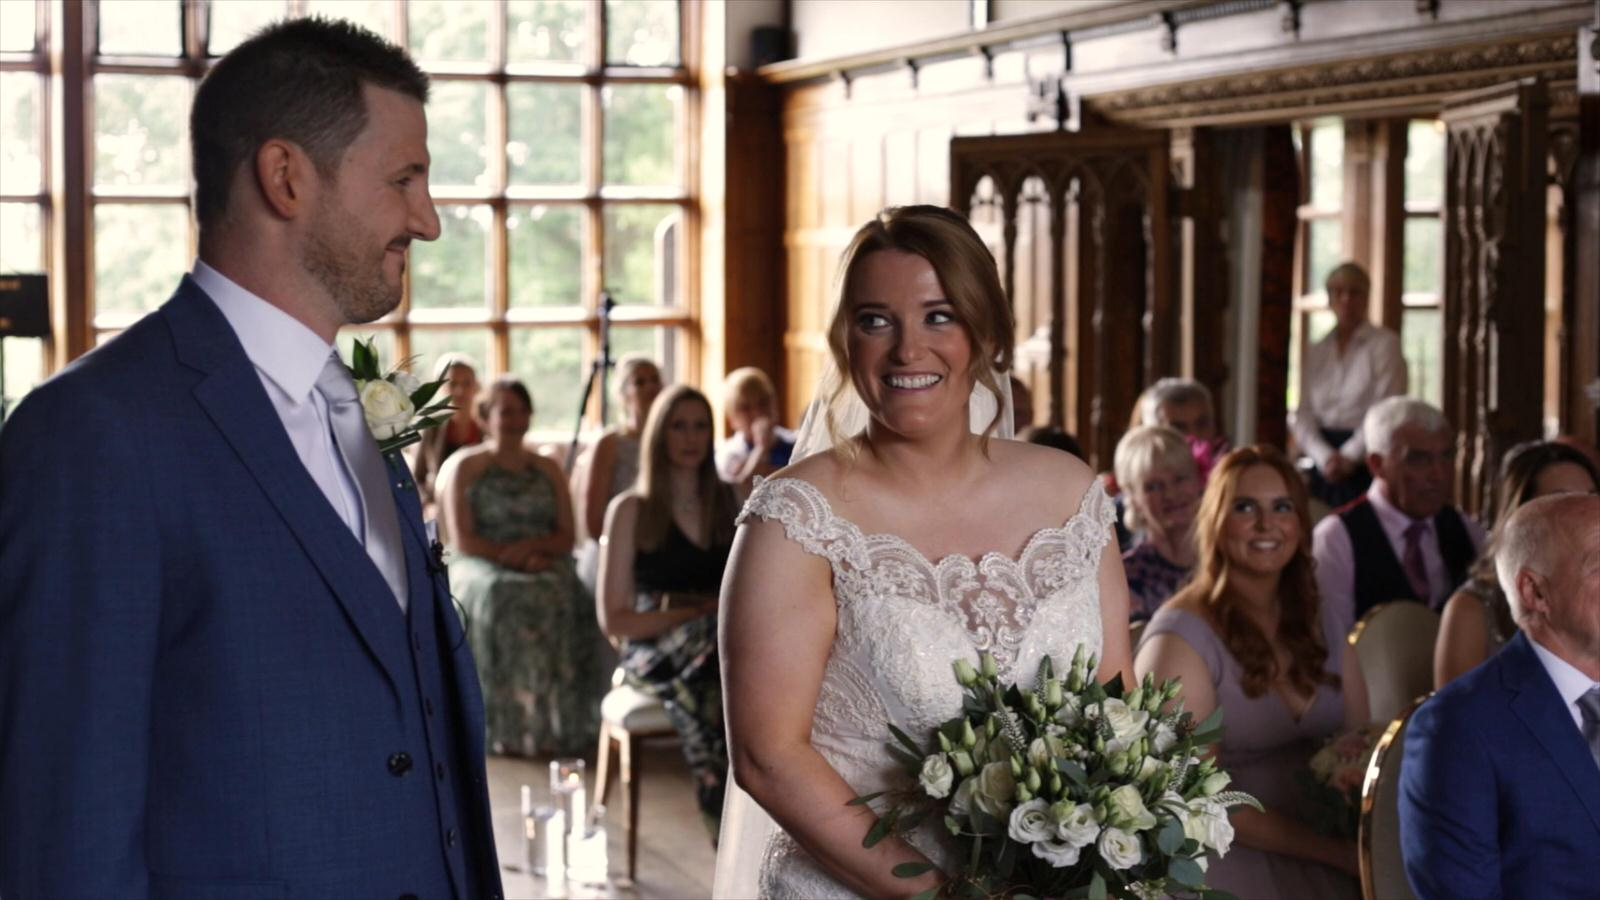 bride smiles at groom during wedding ceremony at Hillbark hotel